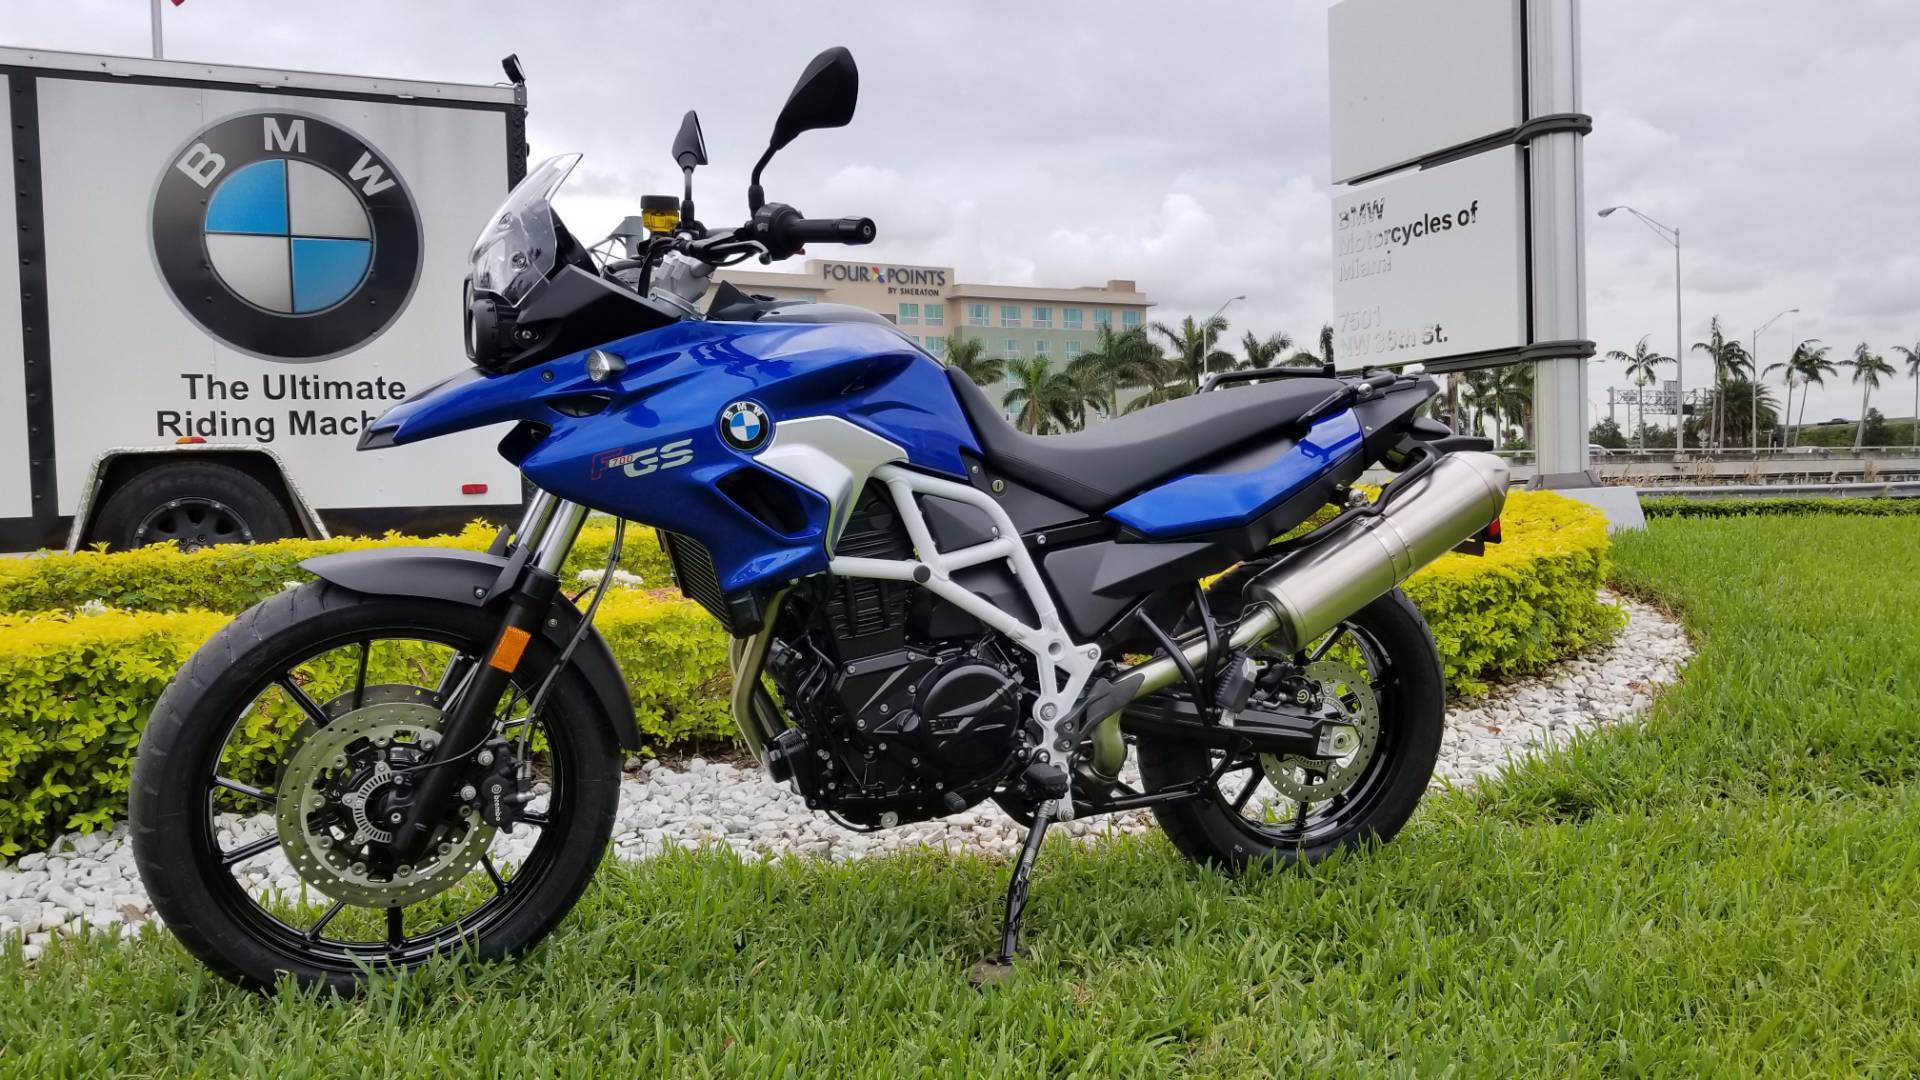 New 2018 BMW F 700 GS For Sale, BMW F 700 GS Blue For Sale, BMW Motorcycle F 700GS, new BMW 700GS, New BMW Motorcycle